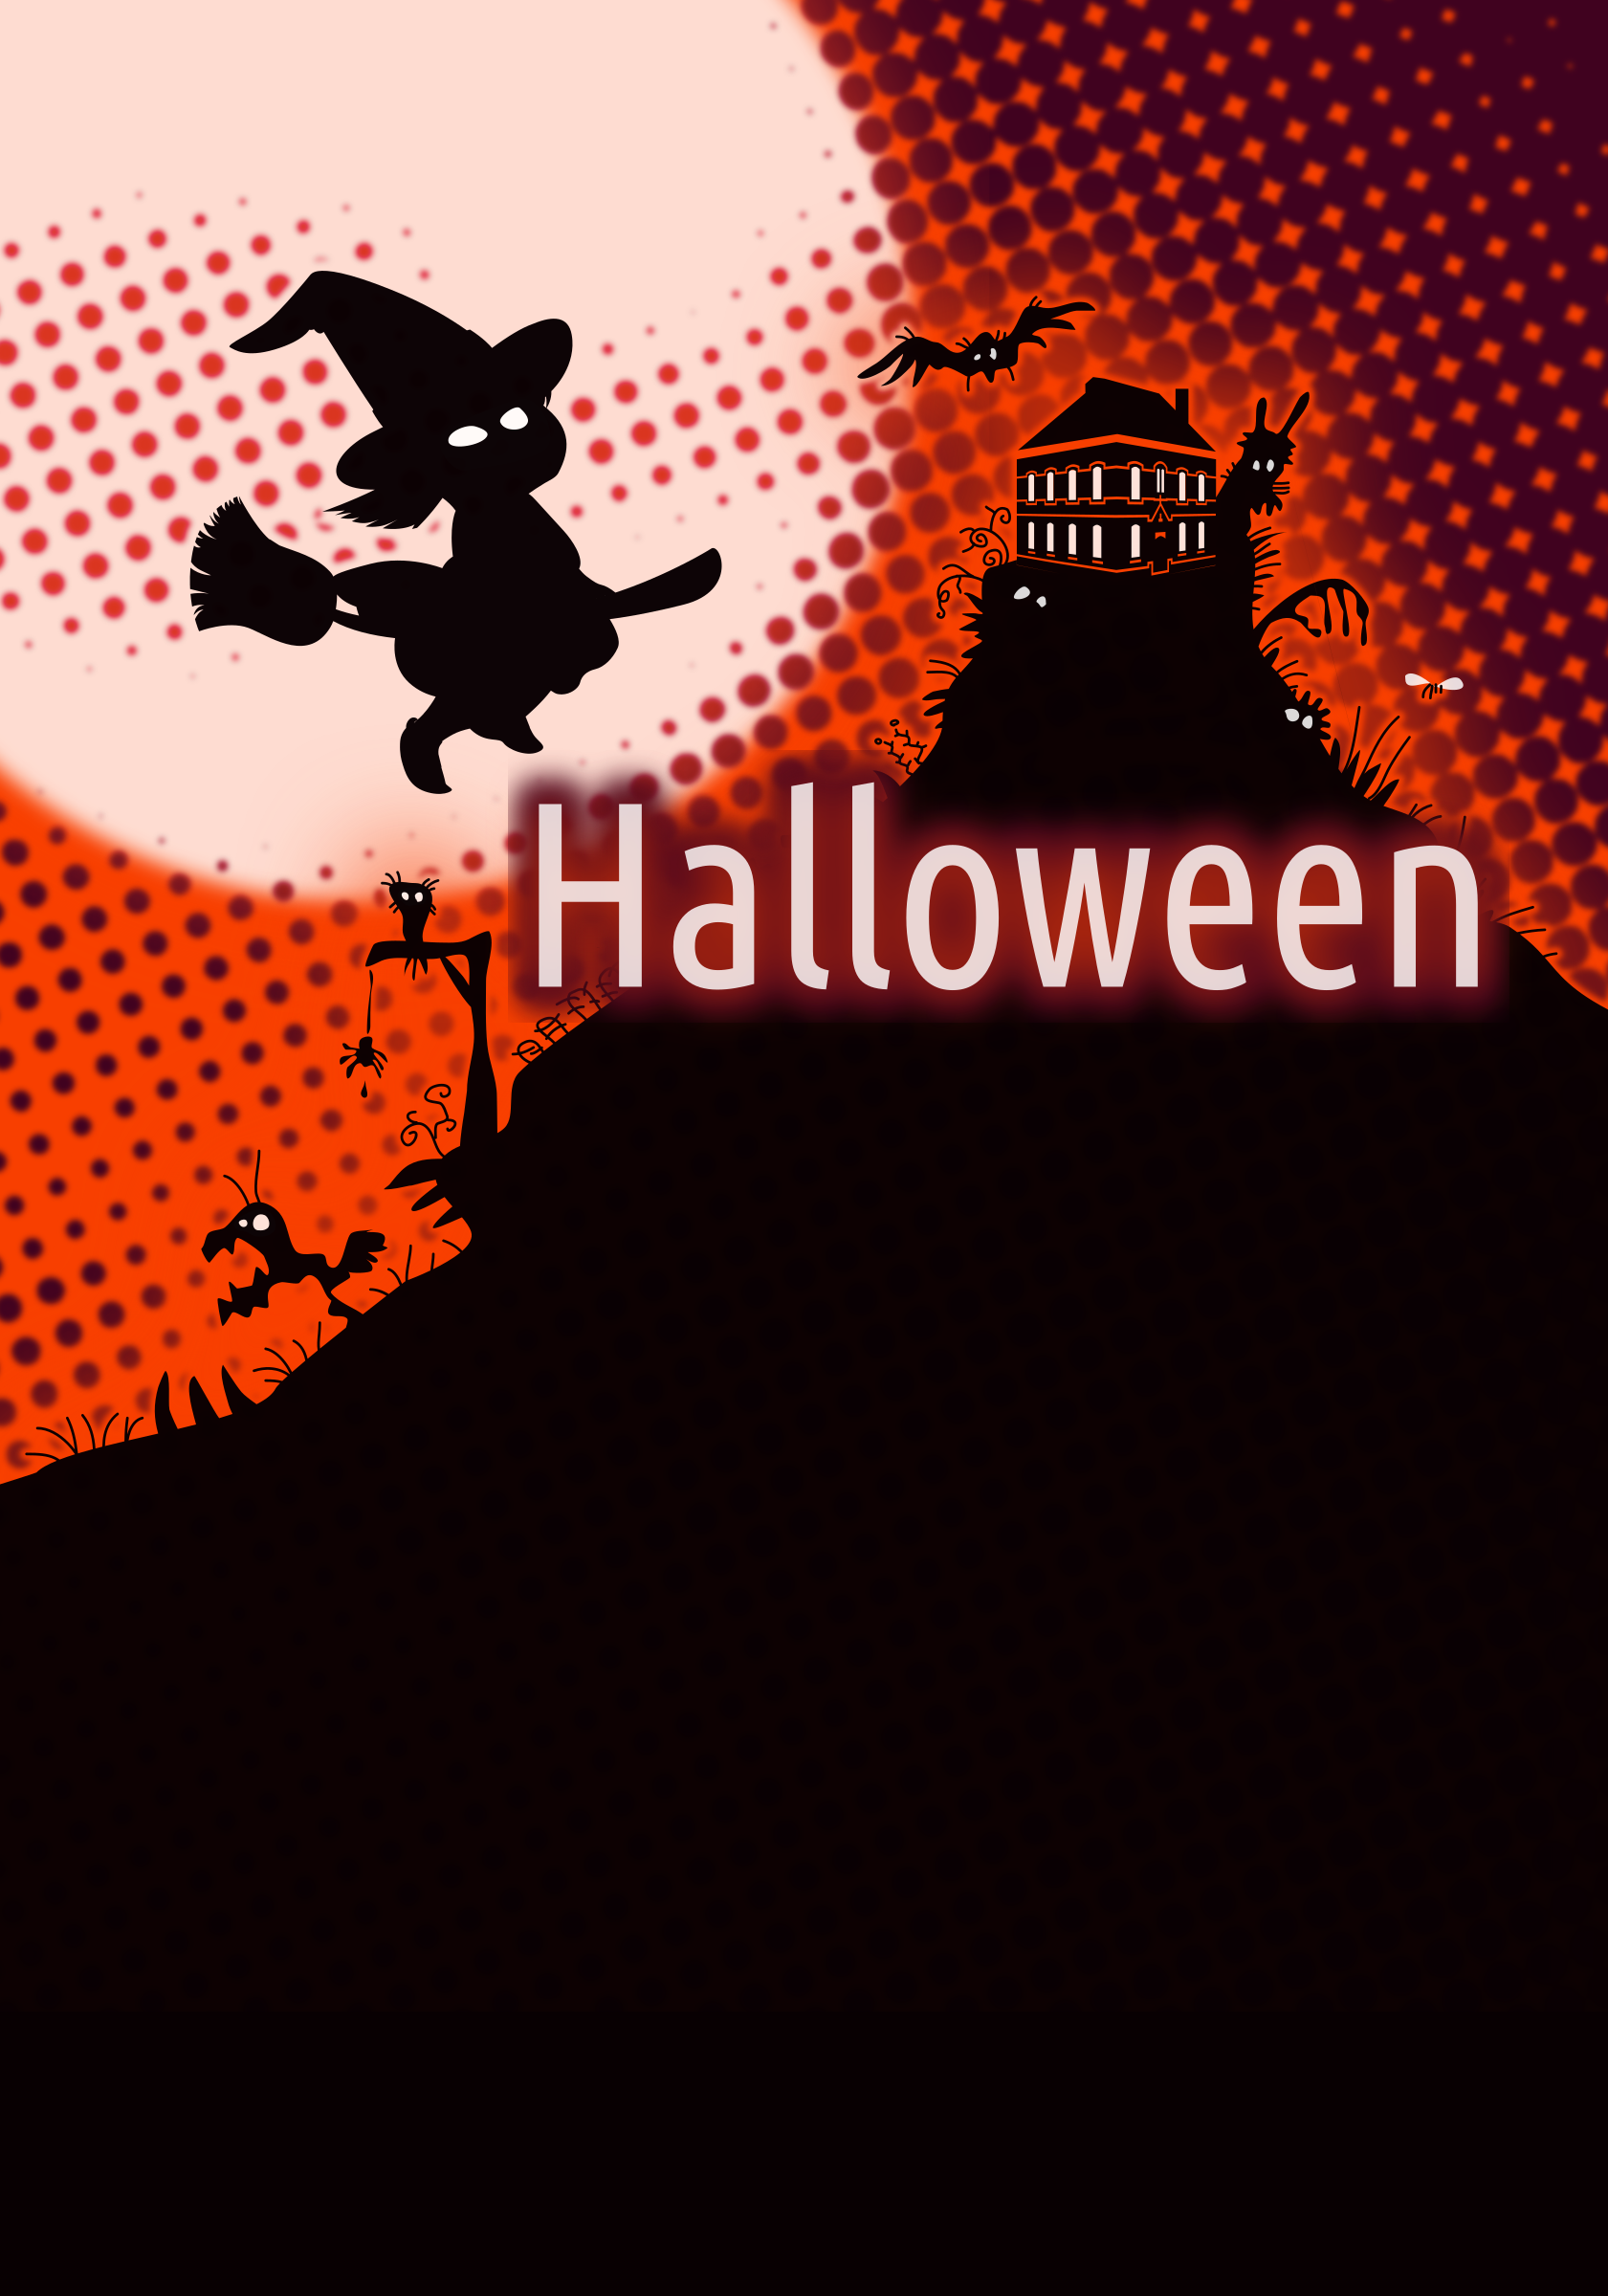 Halloween Poster Background by Klàro